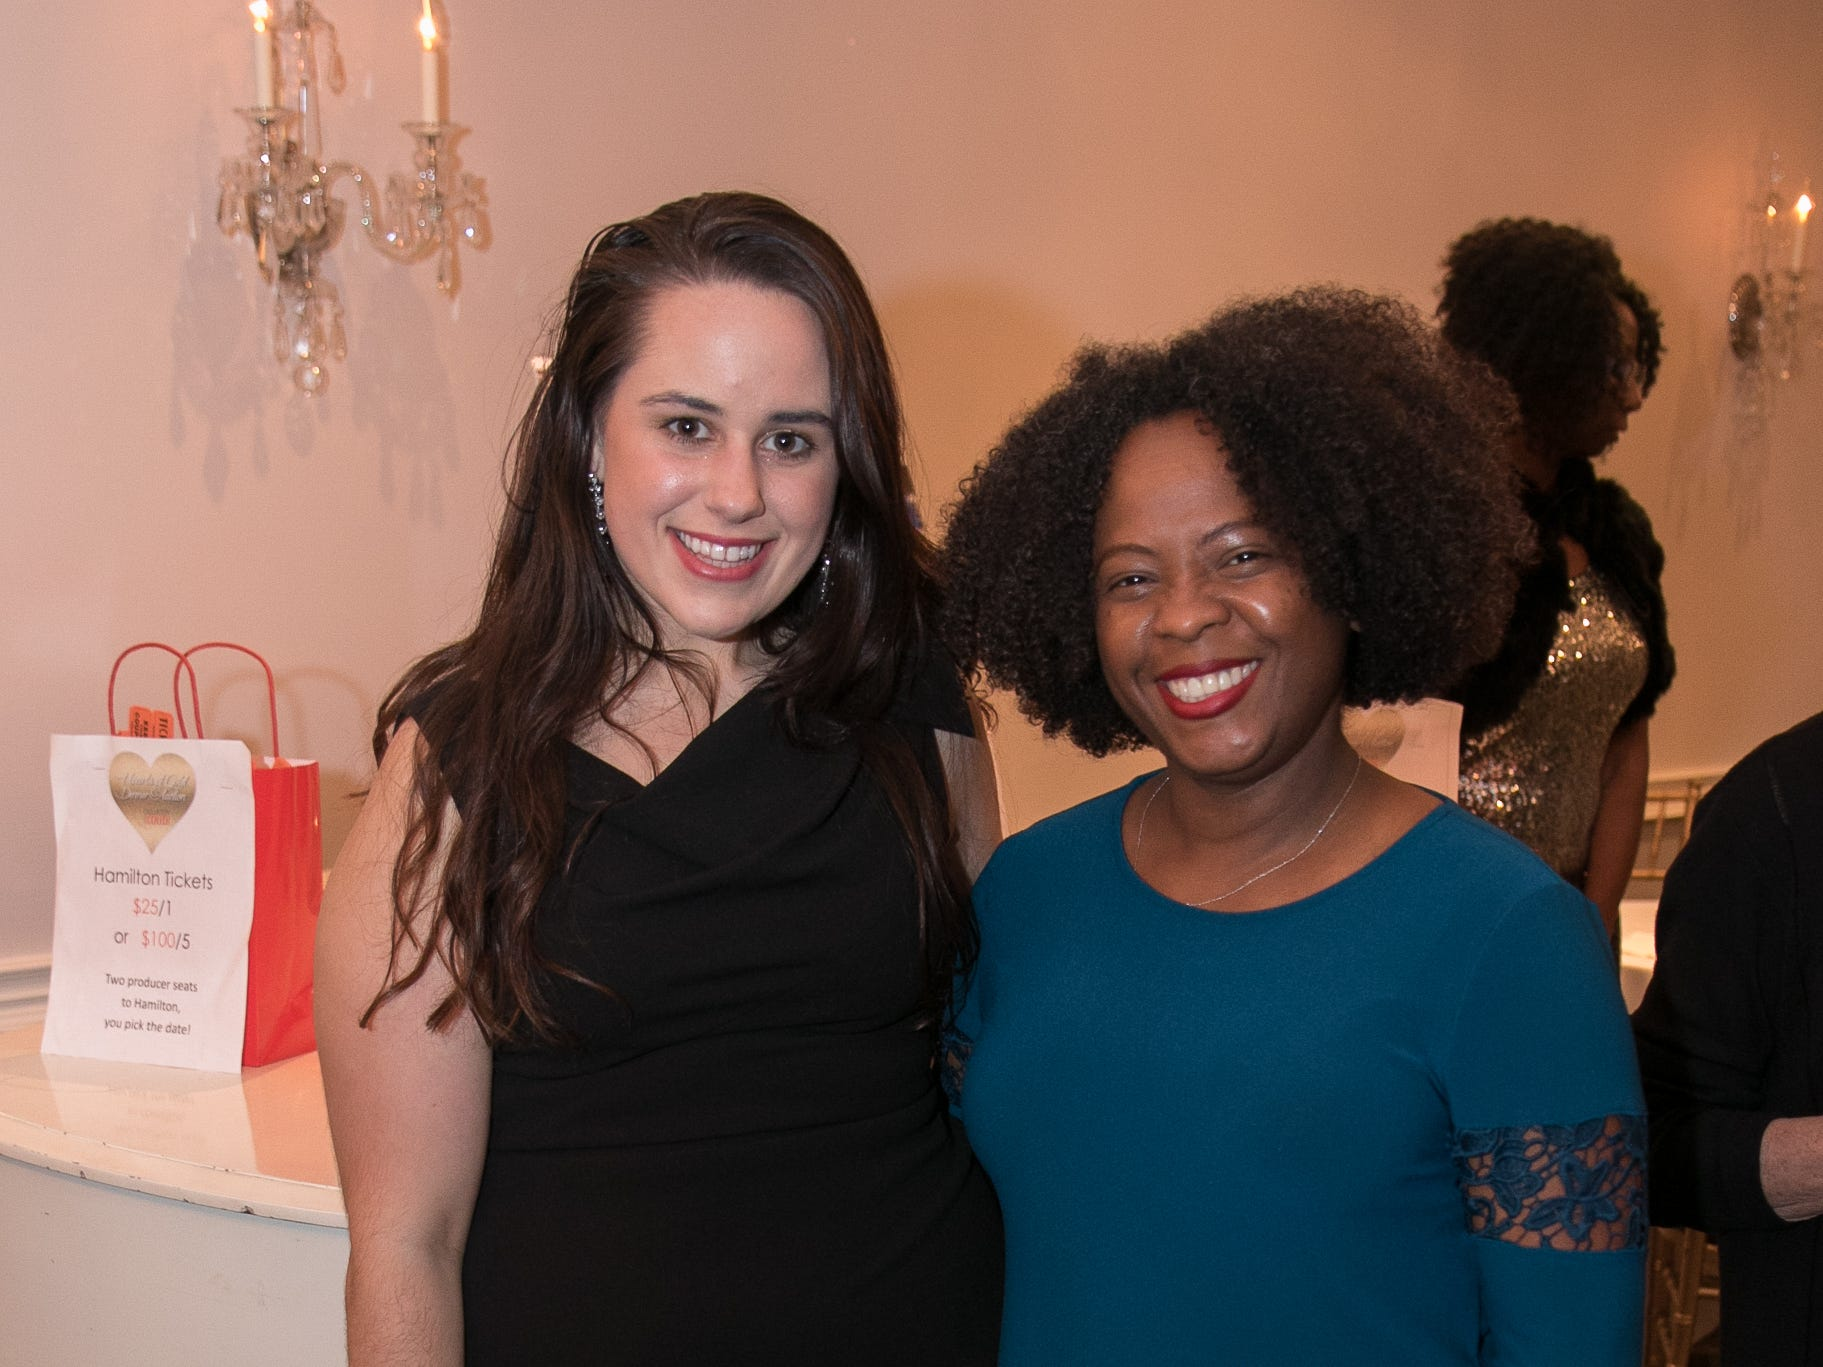 Elizabeth Reich, Phillicia DaCosta. The Bergen Volunteer Center celebrated its 10th anniversary of the Bergen LEADS program at The Hearts of Gold Dinner and Auction at the Stony Hill Inn in Hackensack. 11/08/2018